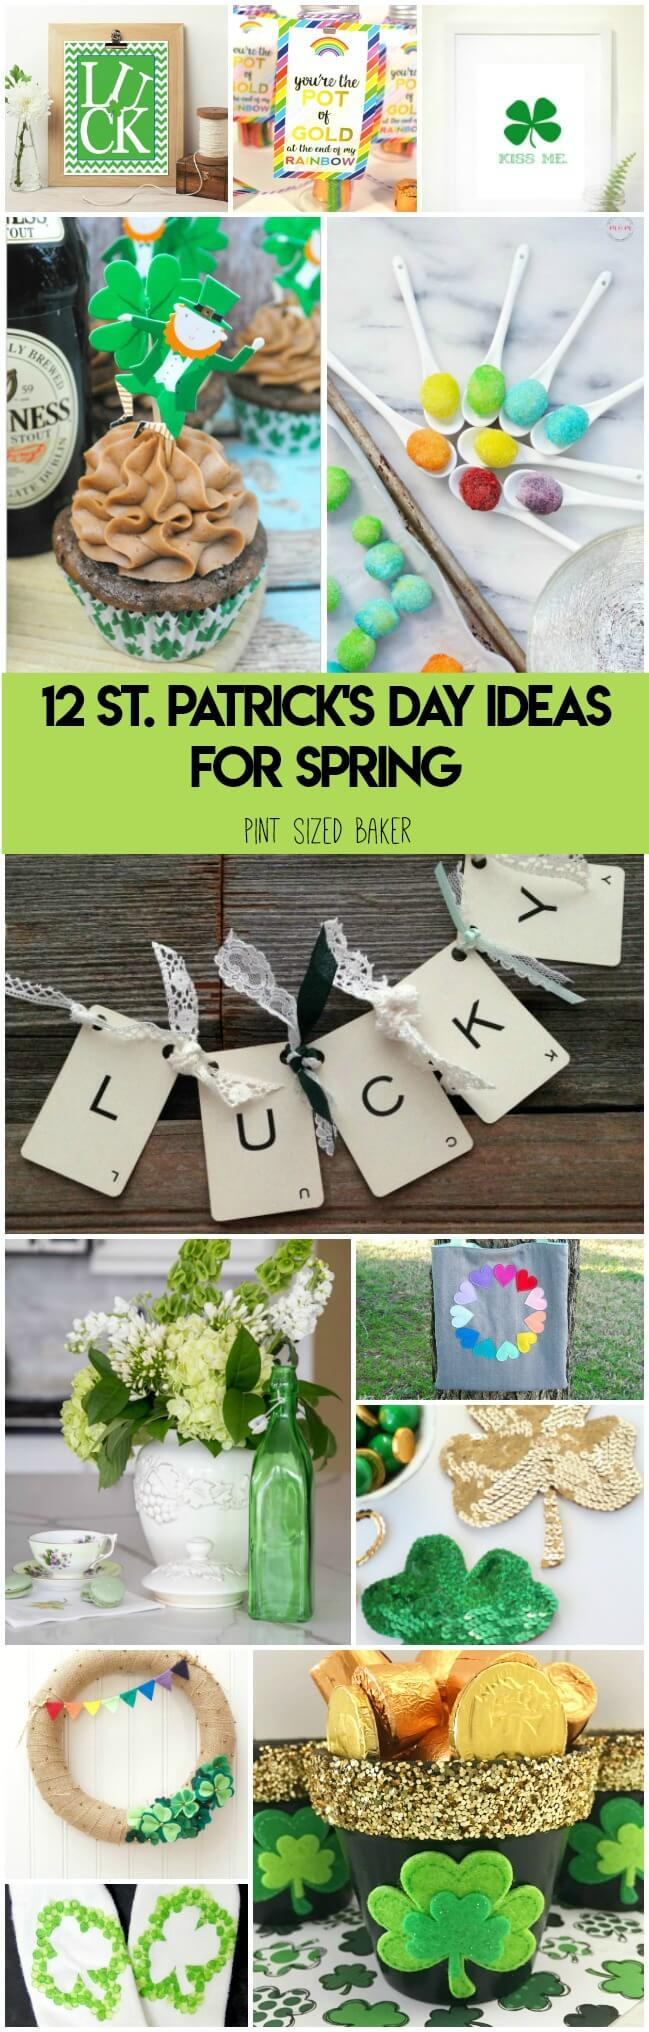 Here's 12 St. Patrick's Day ideas for Spring - decor, crafts, and food that'll brighten up your home and make a rainbow for a cloudy day!